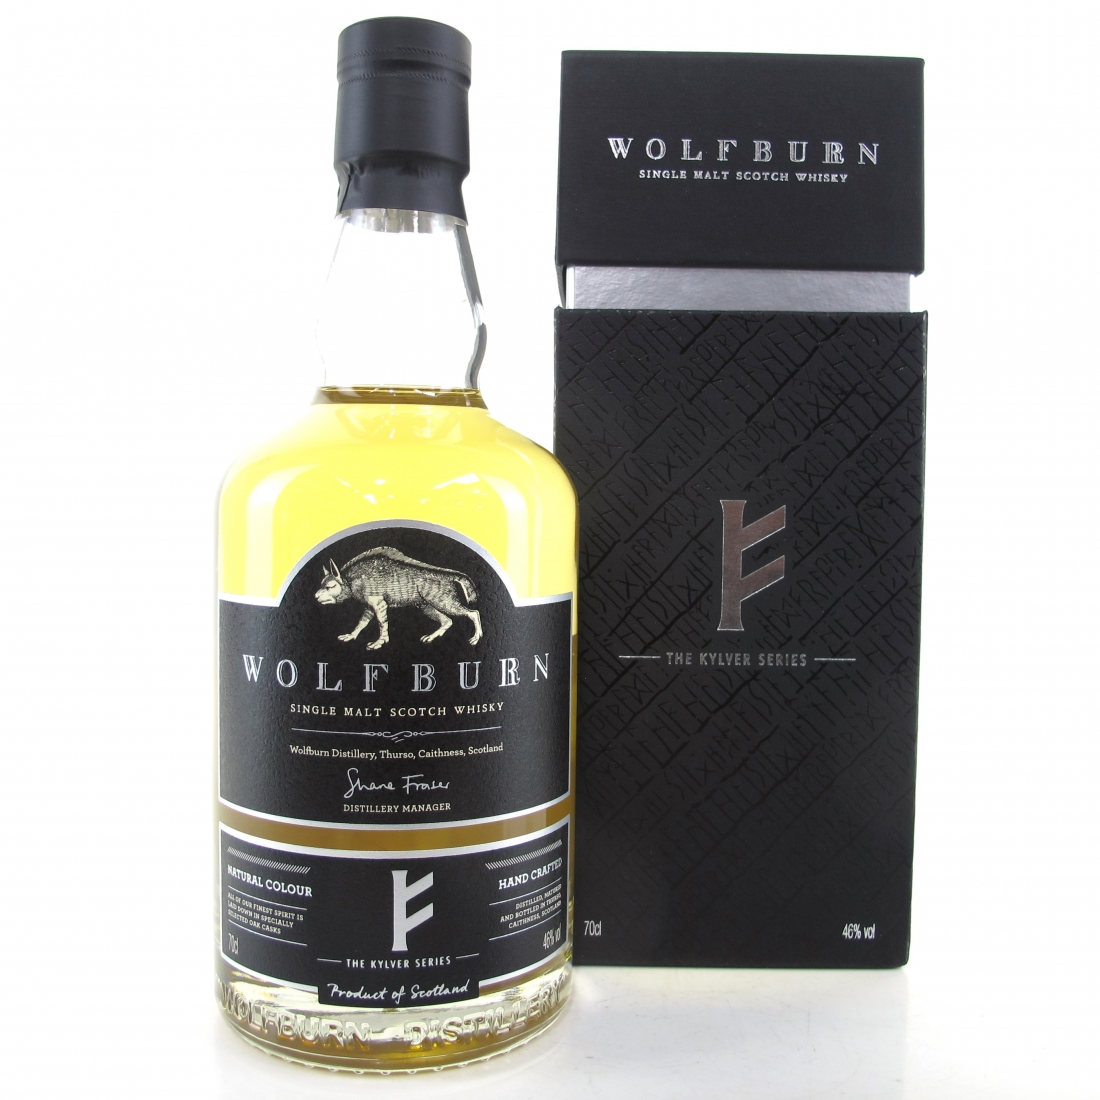 Wolfburn Kylver Series Limited Edition 1st Release